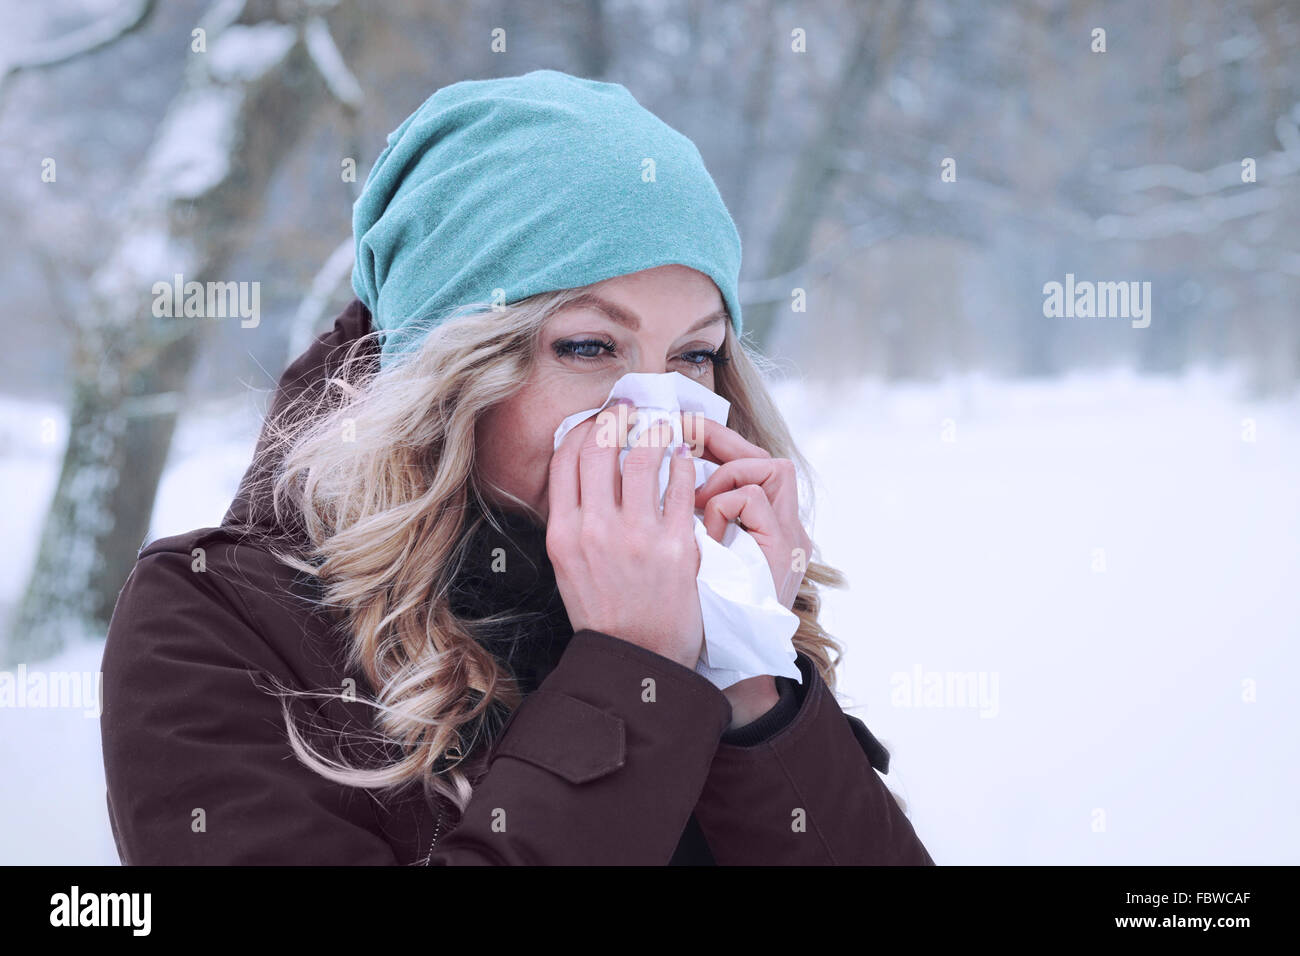 woman blowing her nose in winter - Stock Image